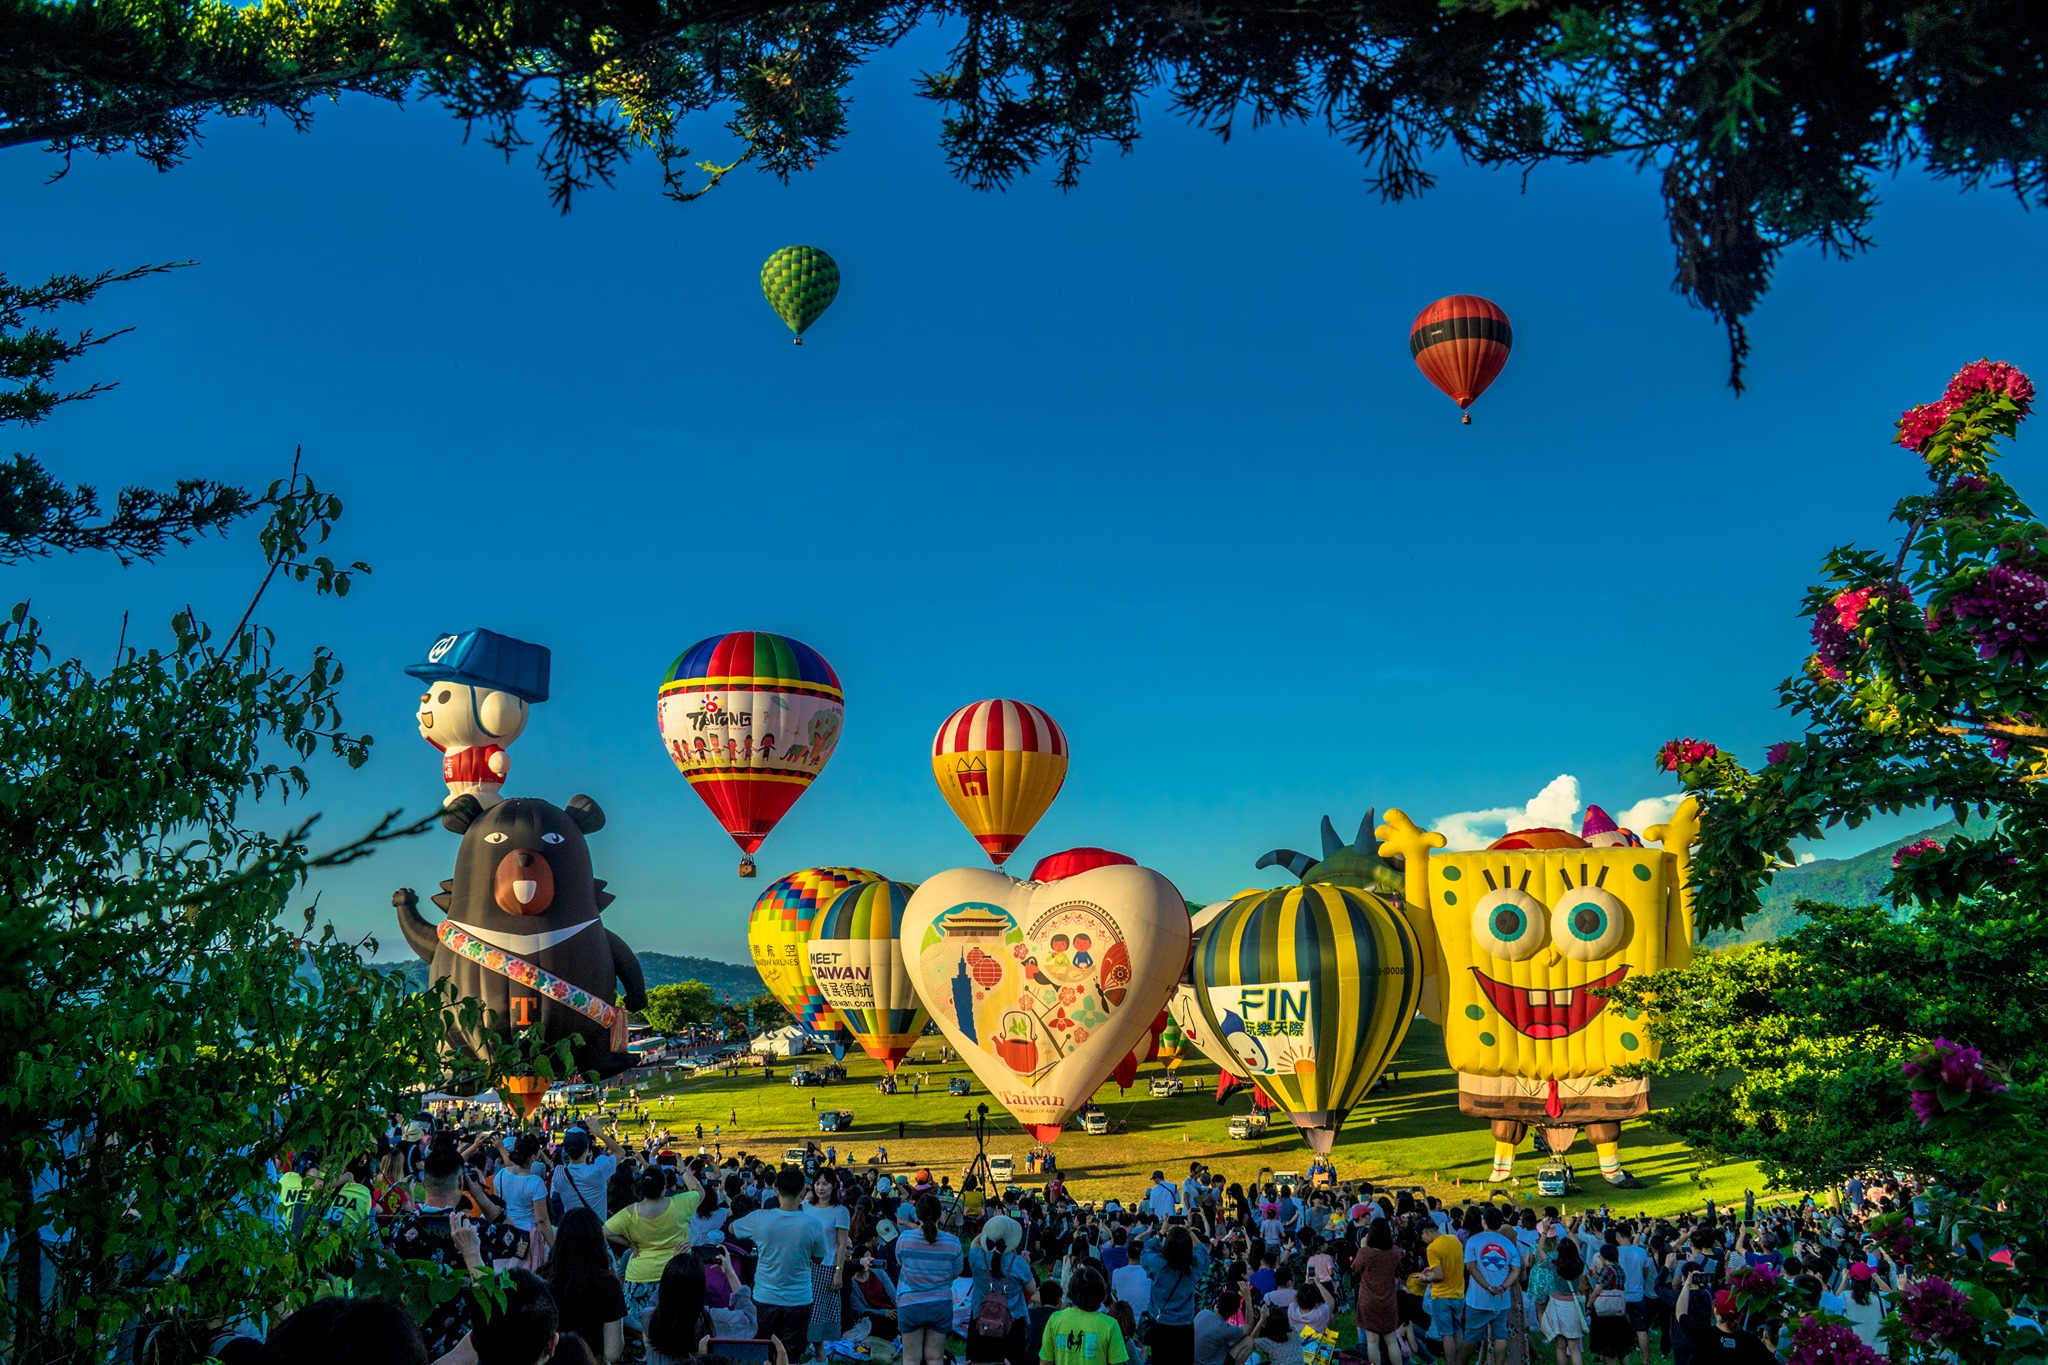 Debuting the Worlds Only Balloon Festival - 2020 Taiwan International Balloon Festival in Taitung